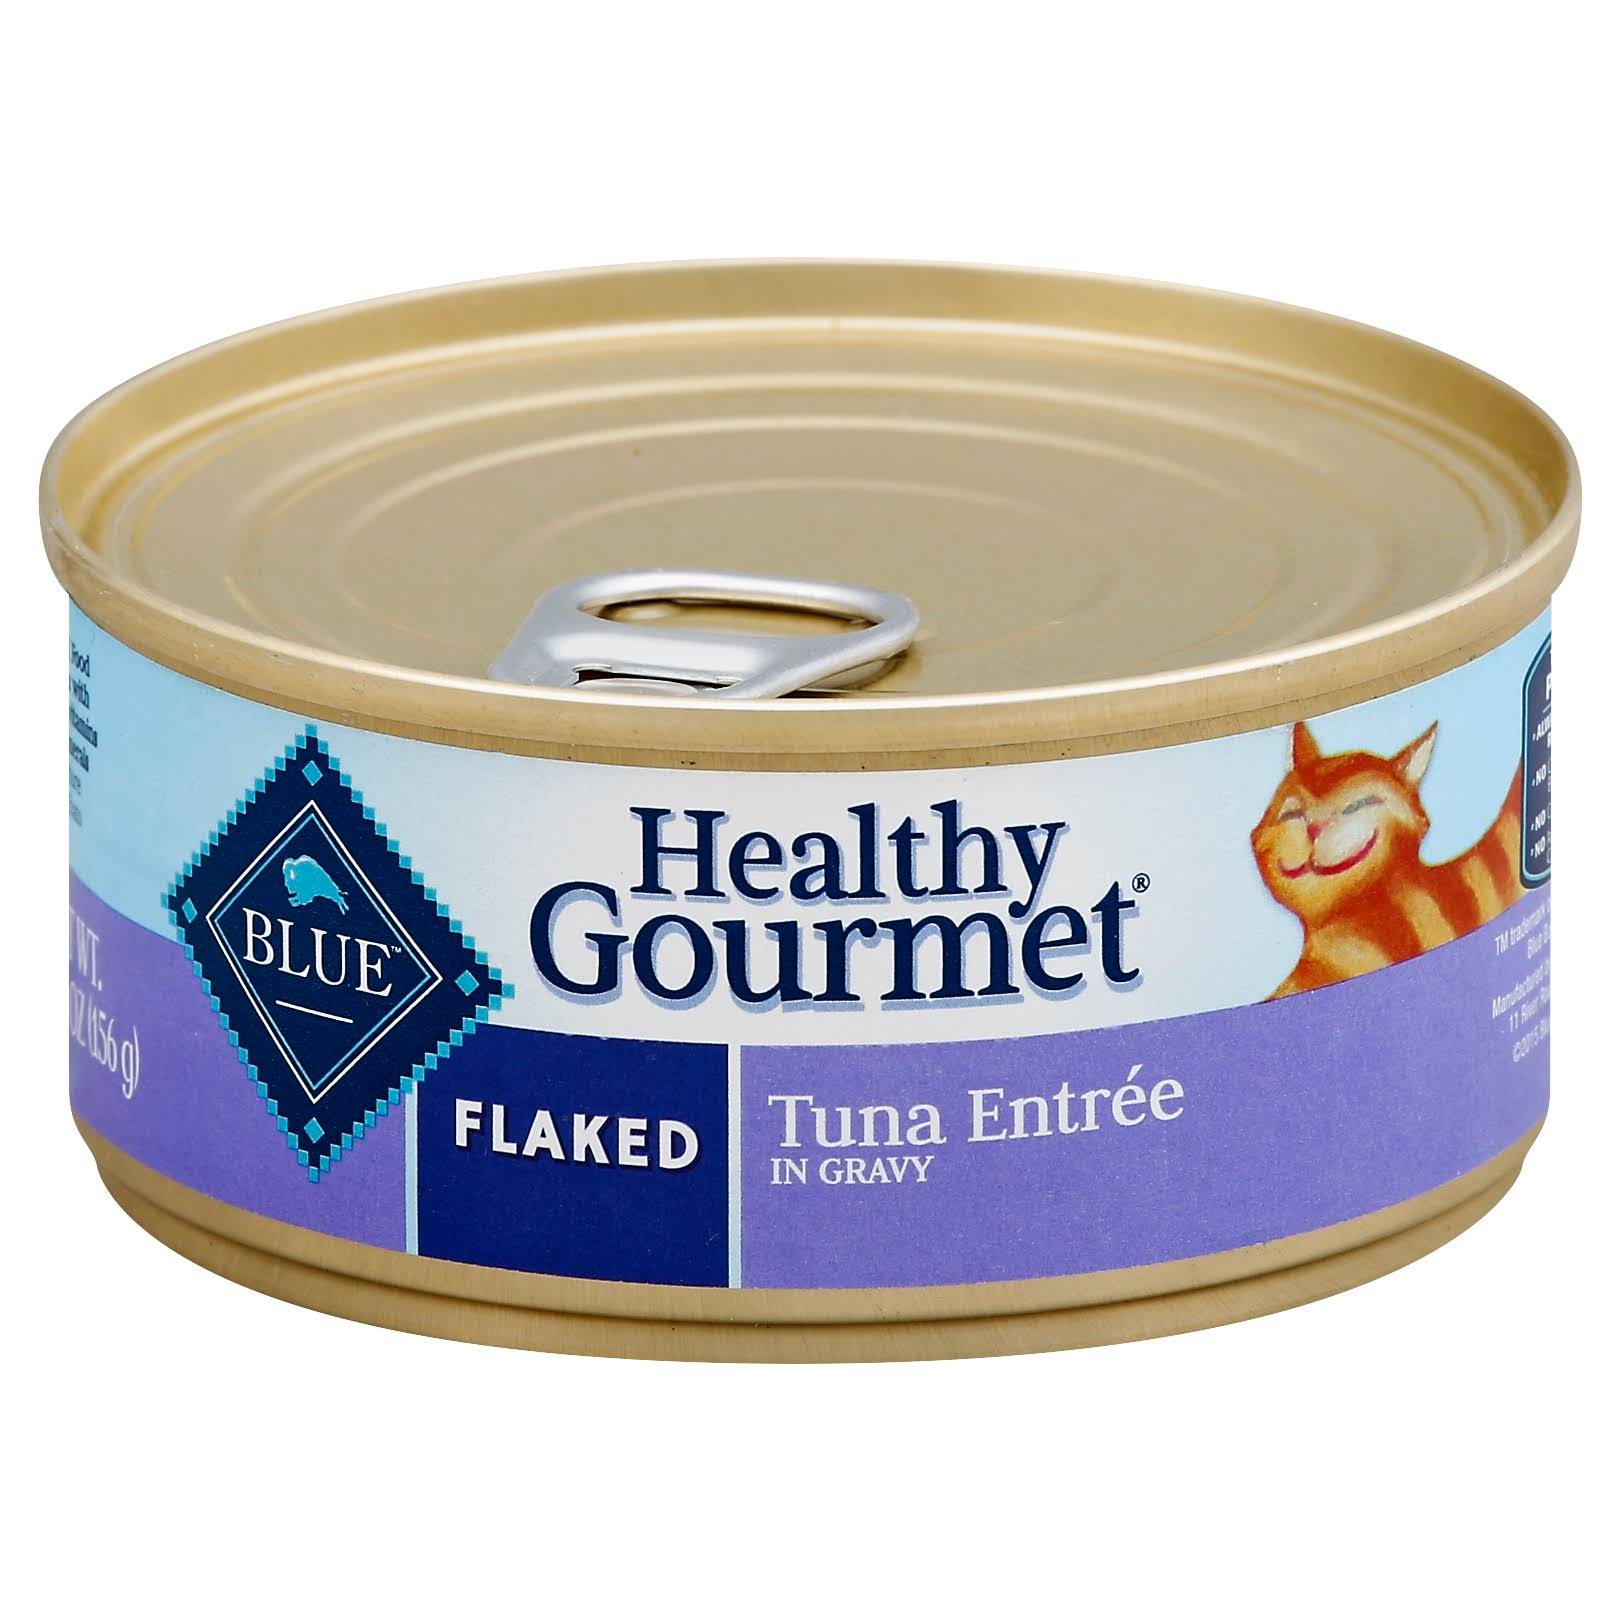 Blue Buffalo Healthy Gourmet Cat Food - Flaked, Tuna Entree